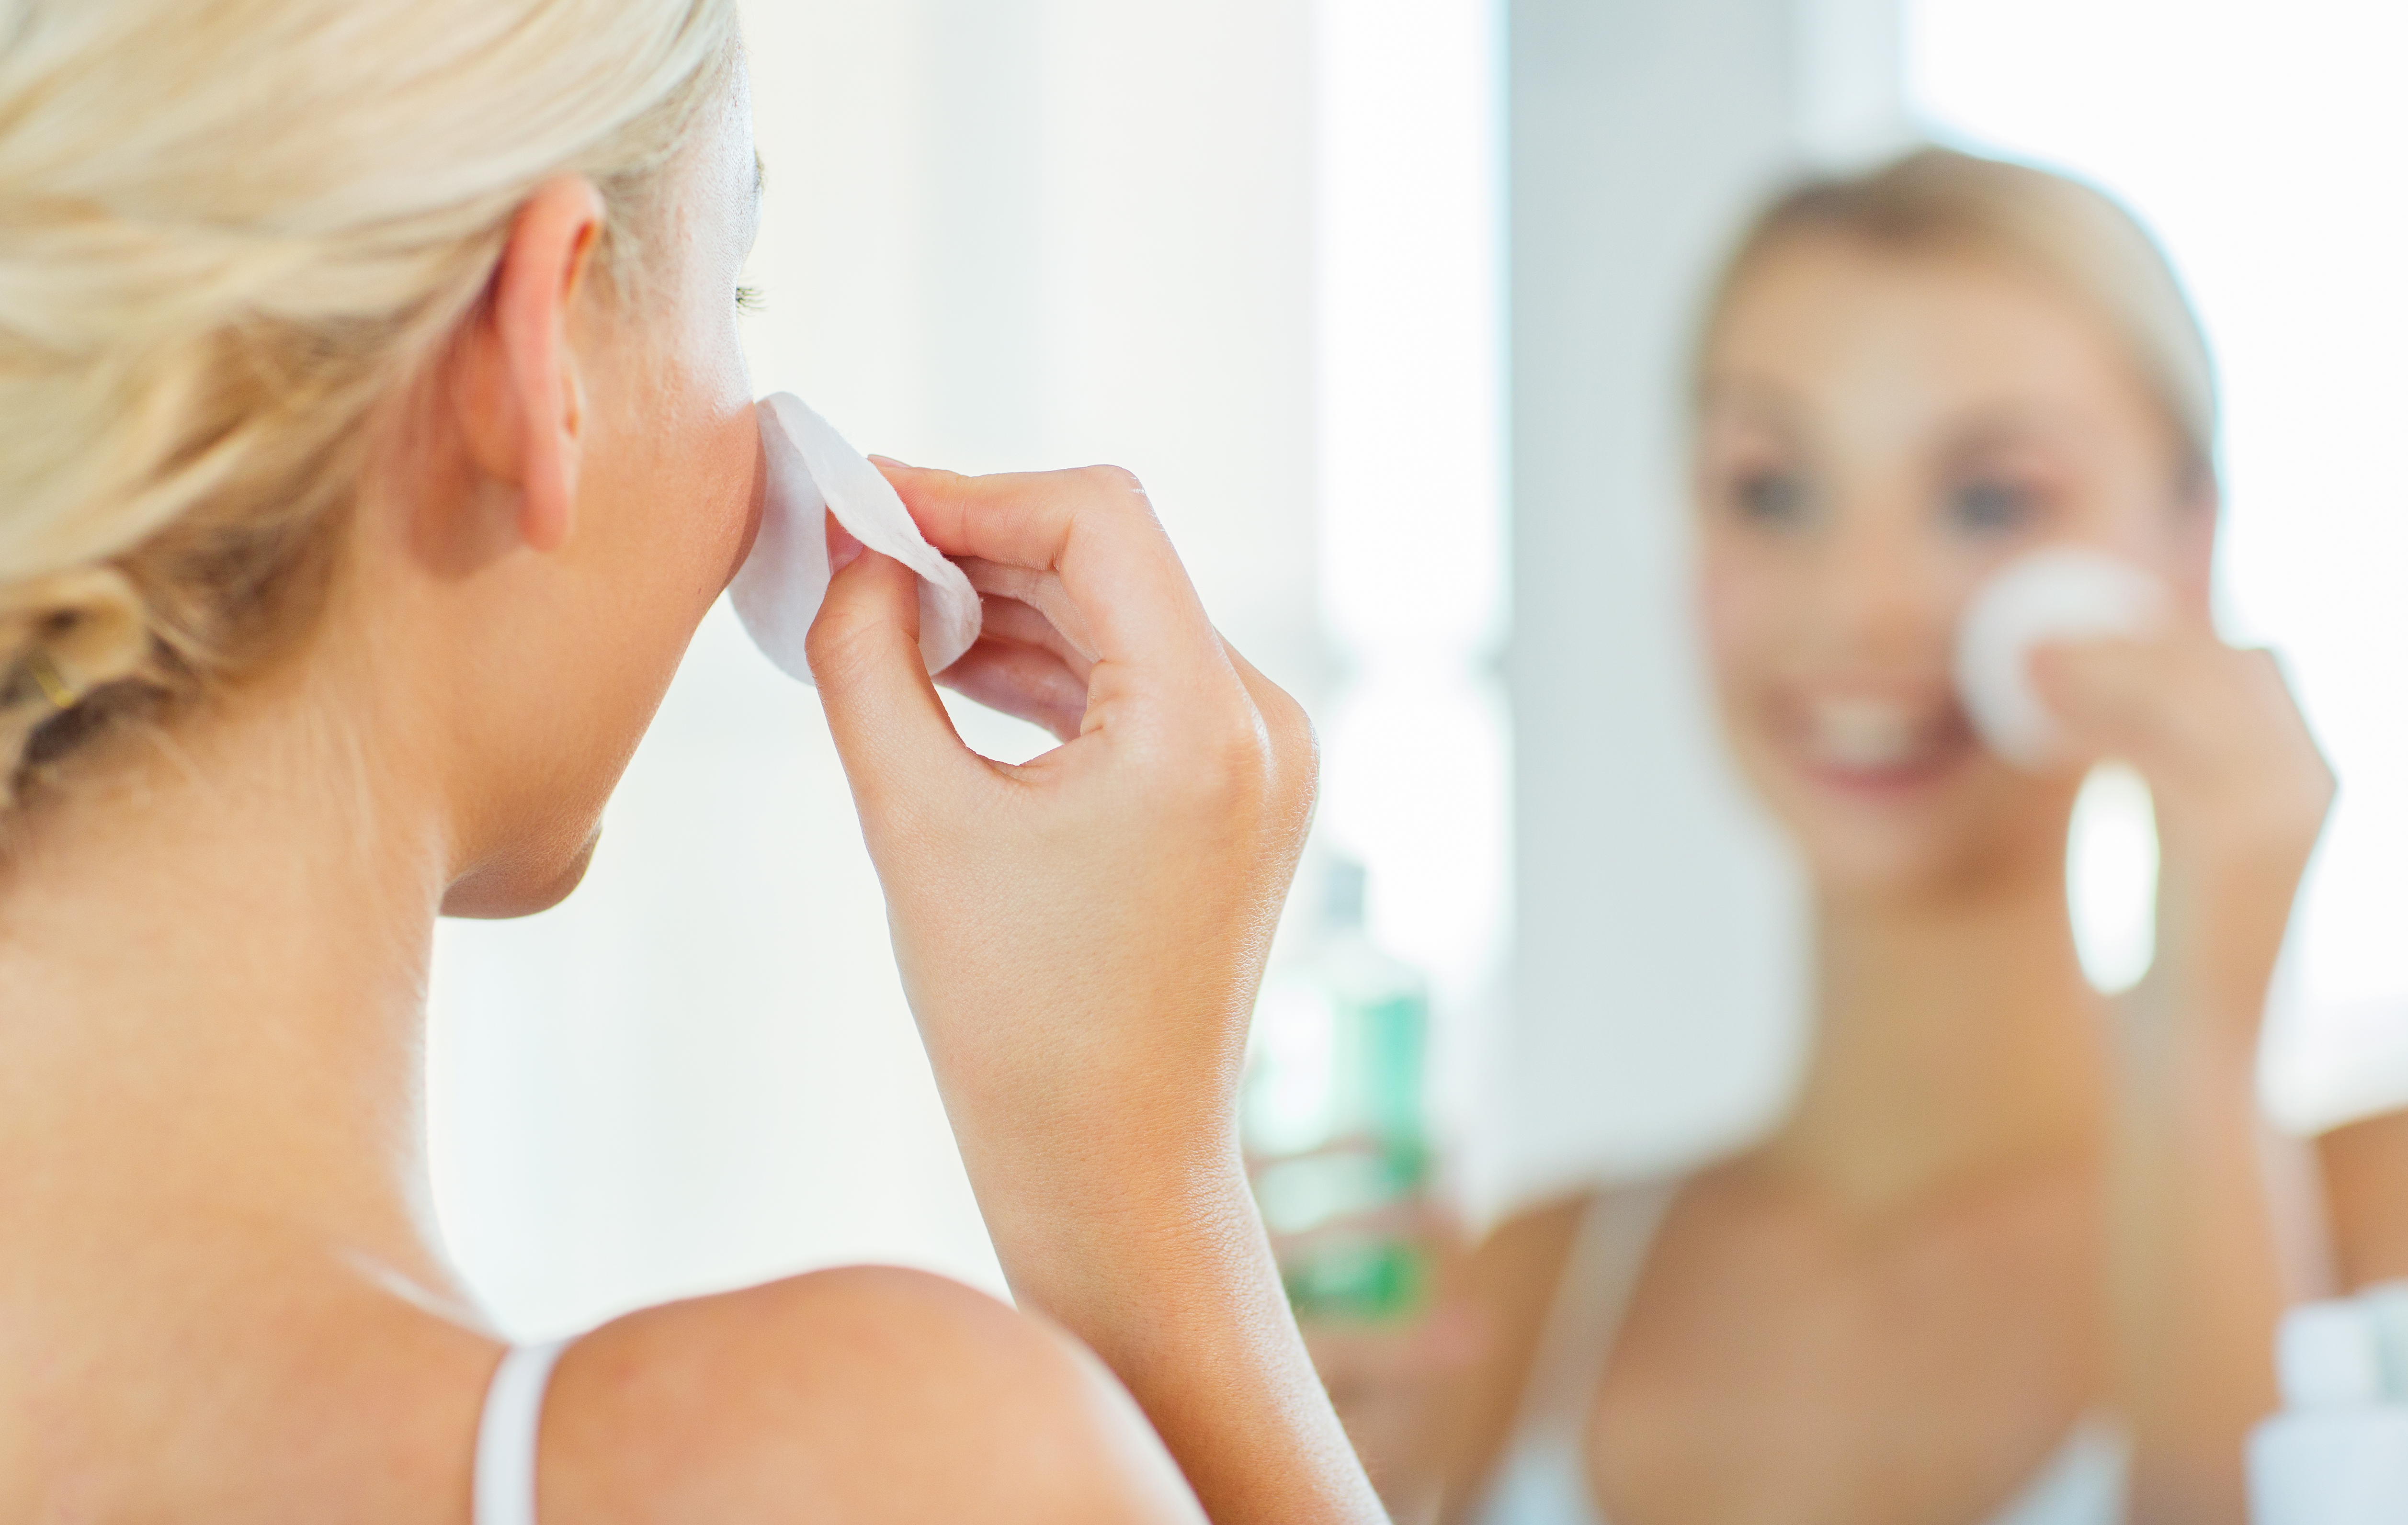 close up of woman cleaning face at bathroom